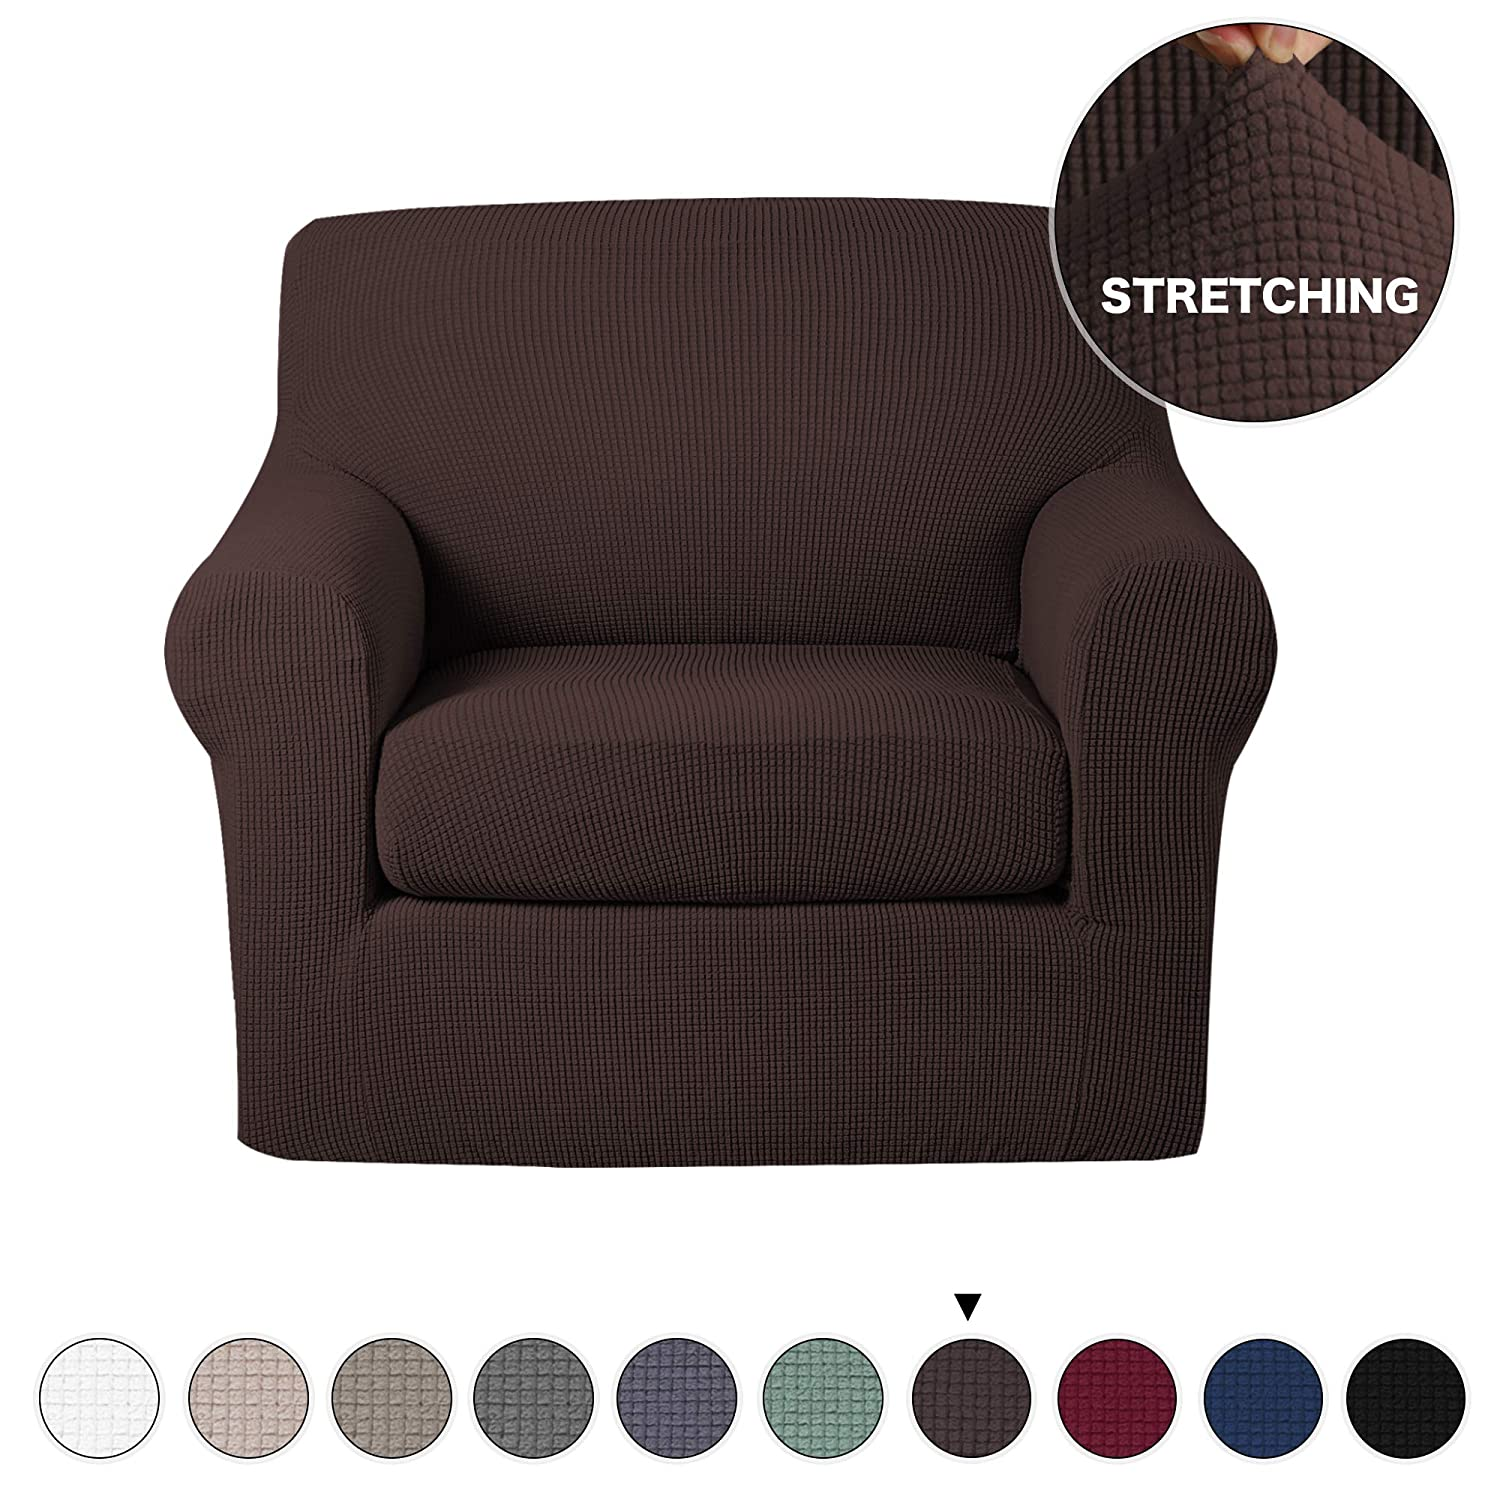 Prime Turquoize Armchair Slipcover 2 Piece Couch Cover With Separate Seat Cushion Cover Spandex Furniture Protector Machine Washable Feature Jacquard Small Beatyapartments Chair Design Images Beatyapartmentscom